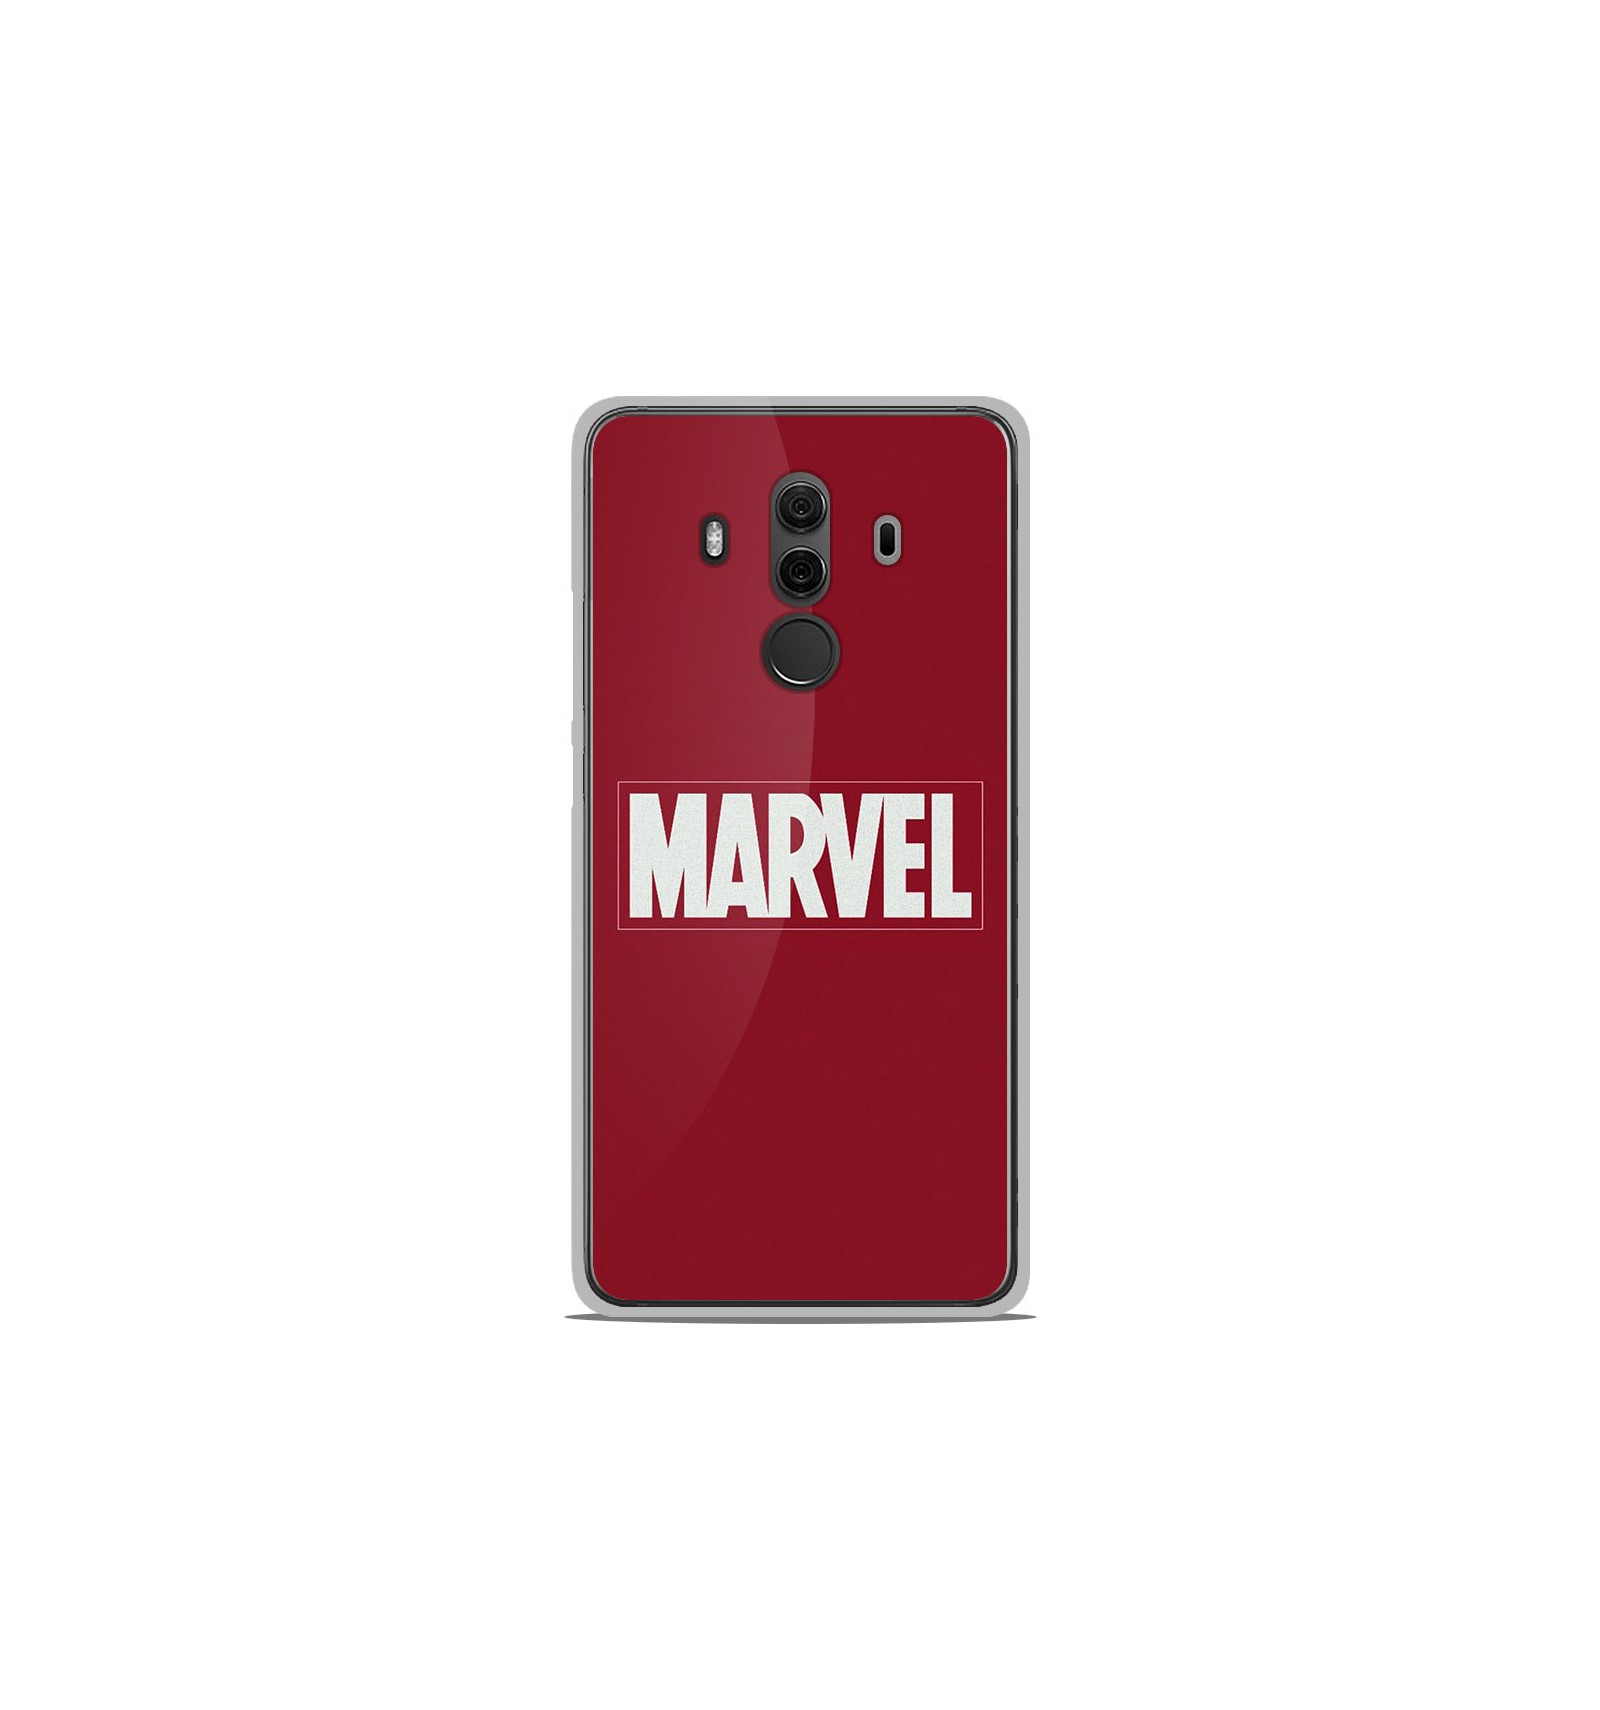 Coque en silicone Huawei Mate 10 Pro - Marvel